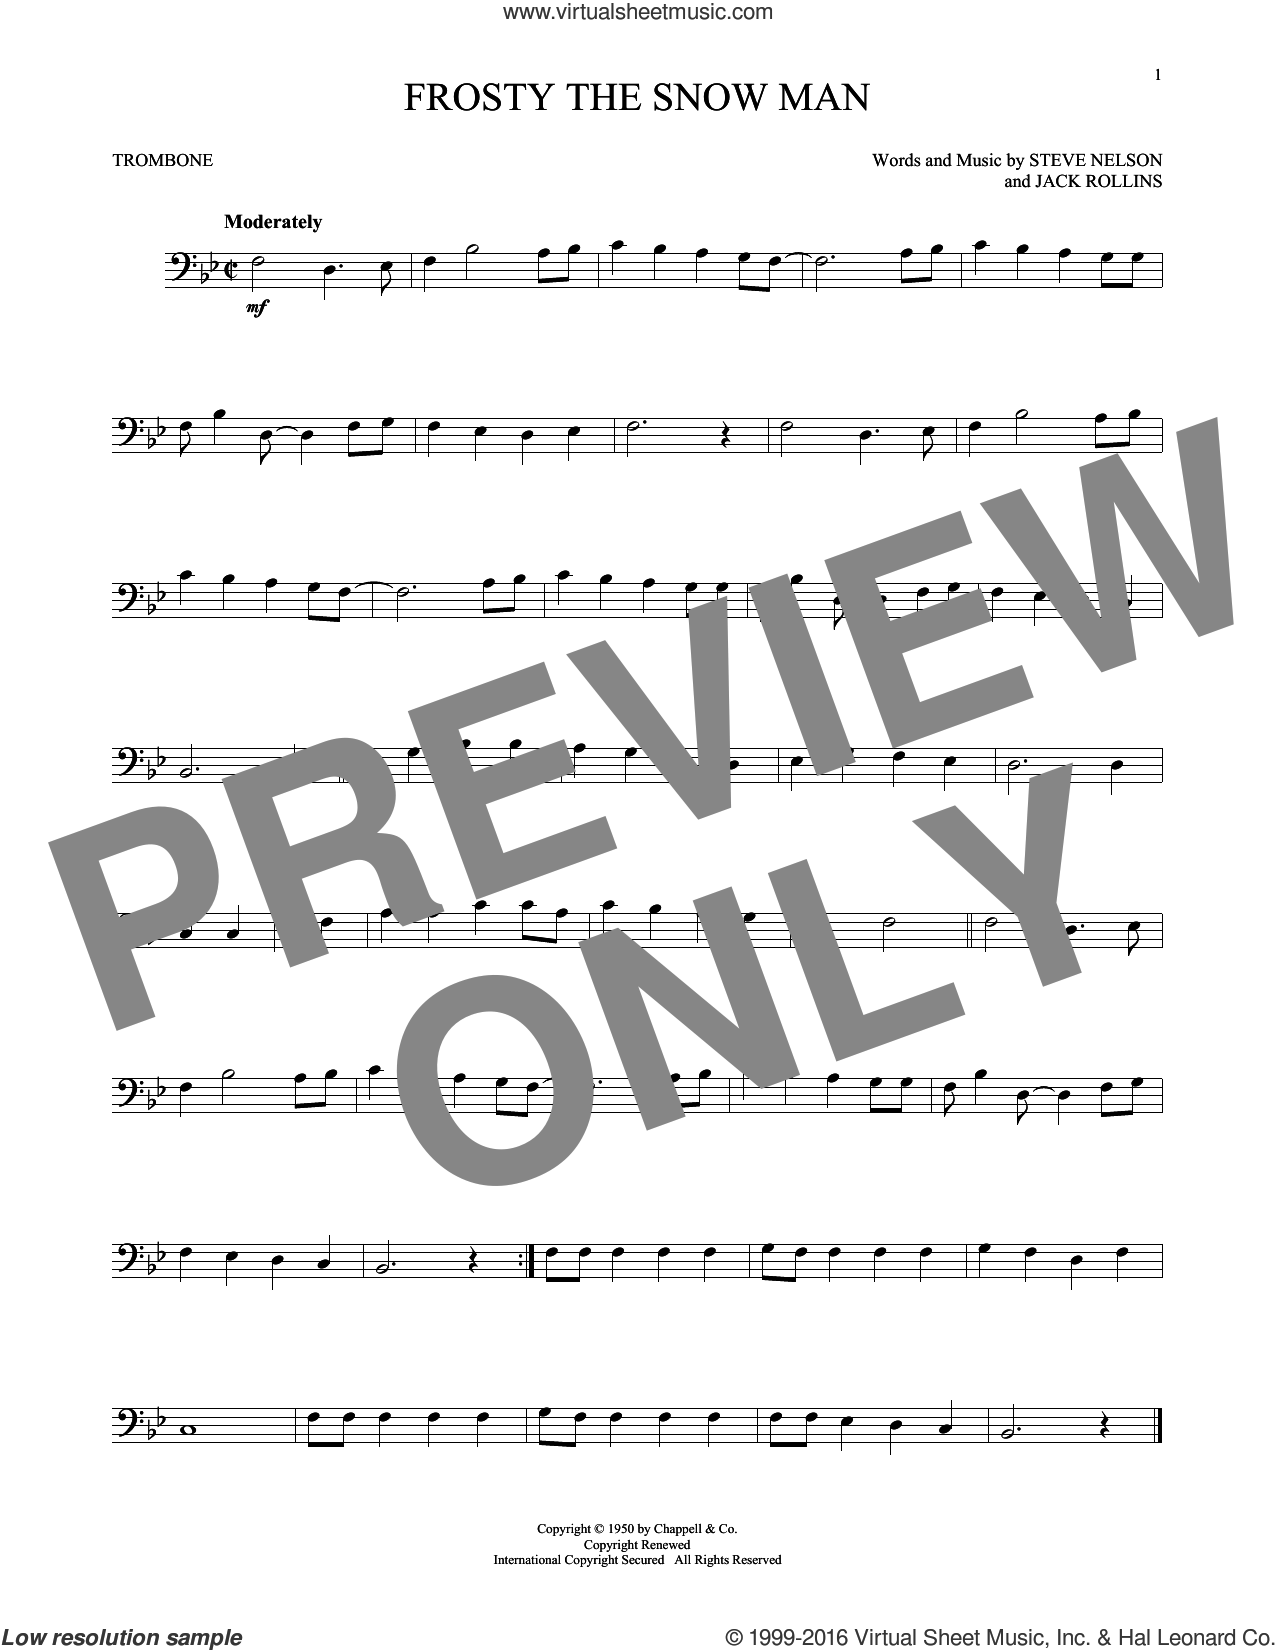 Frosty The Snow Man sheet music for trombone solo by Steve Nelson, Jack Rollins and Jack Rollins & Steve Nelson, intermediate skill level